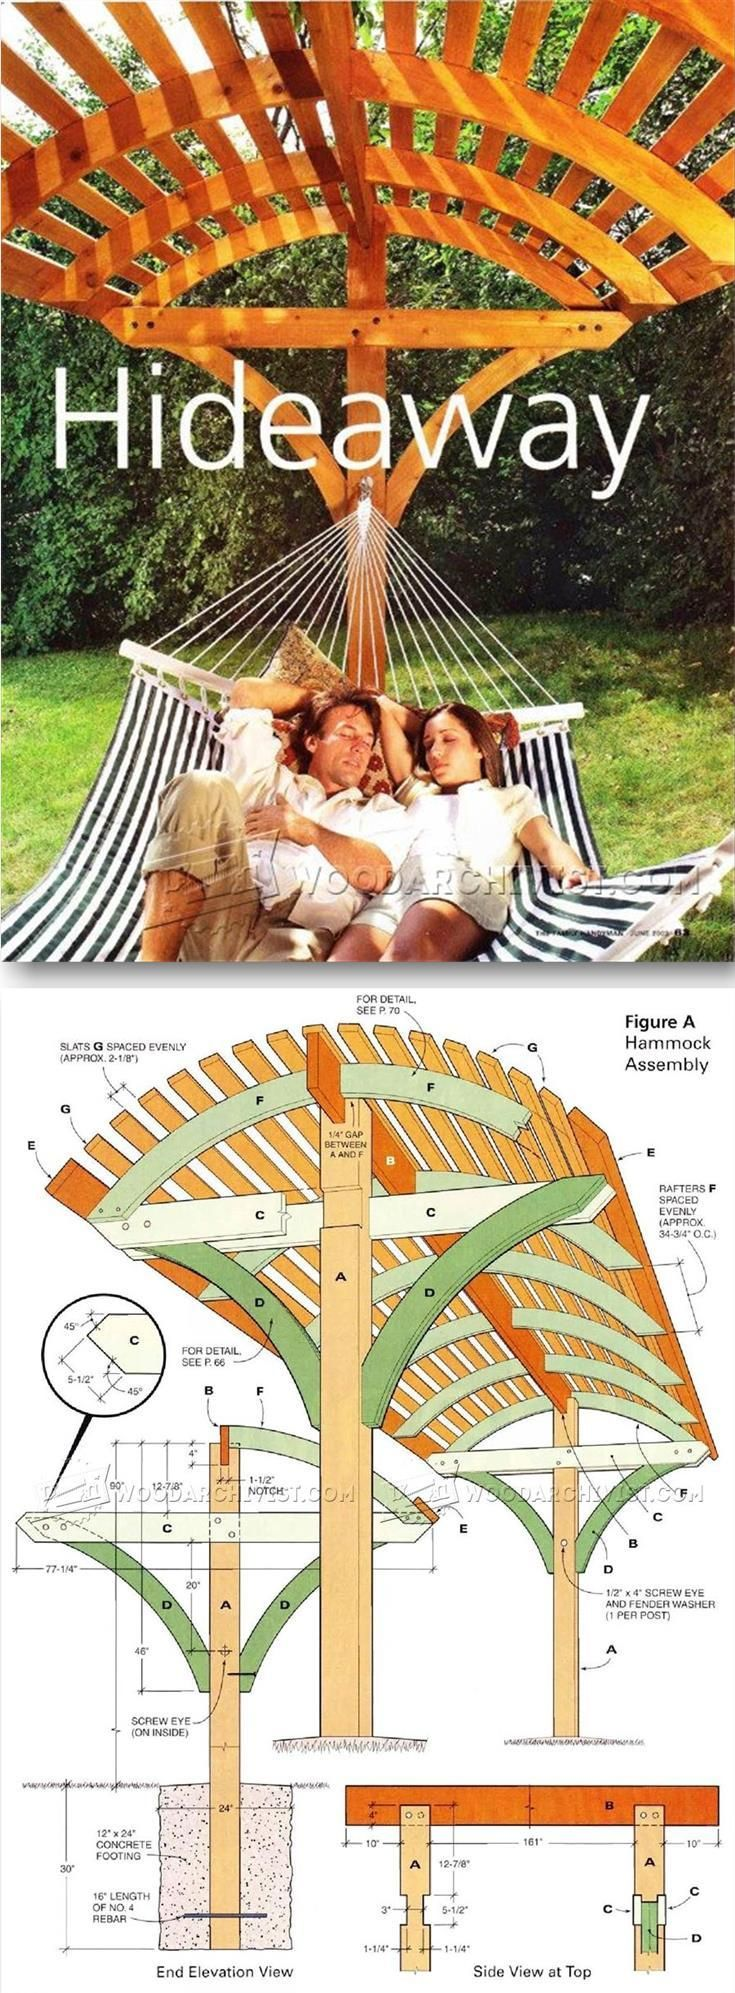 Overhead Shading Hammock Stand Plans – Outdoor Plans and Projects | WoodArchivist.